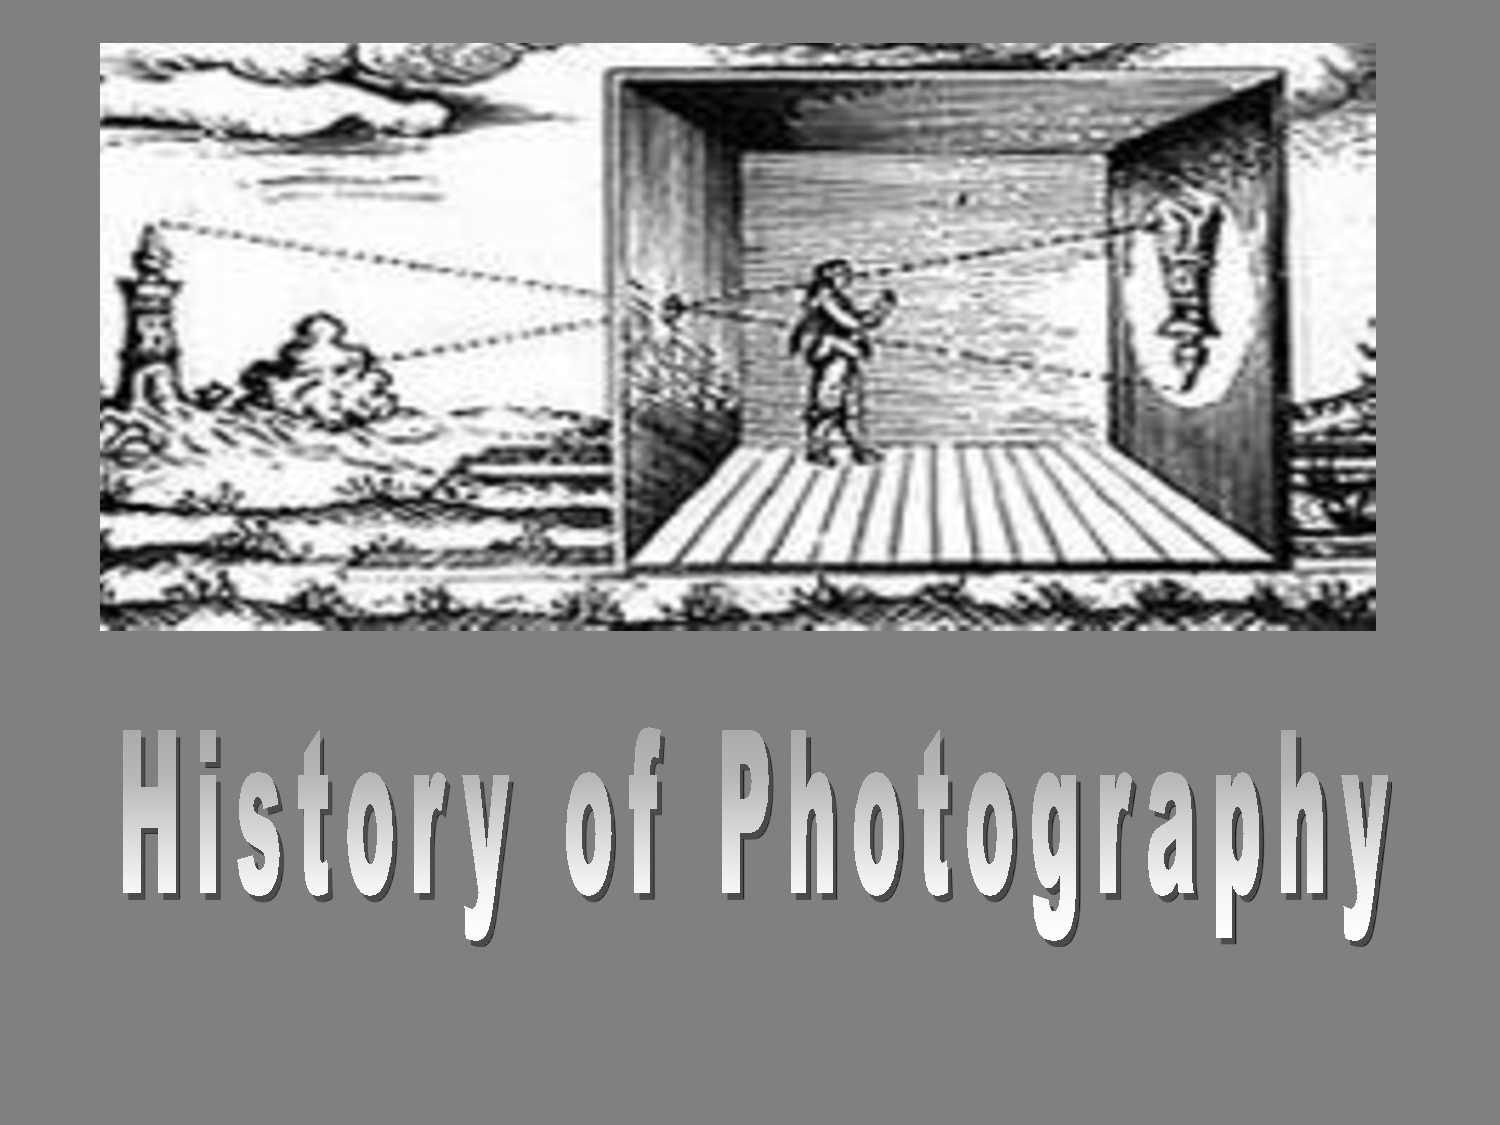 the history of photography essay History of photography essayconviction as a nonverbal means of communication, photography can surmount the barriers of language.